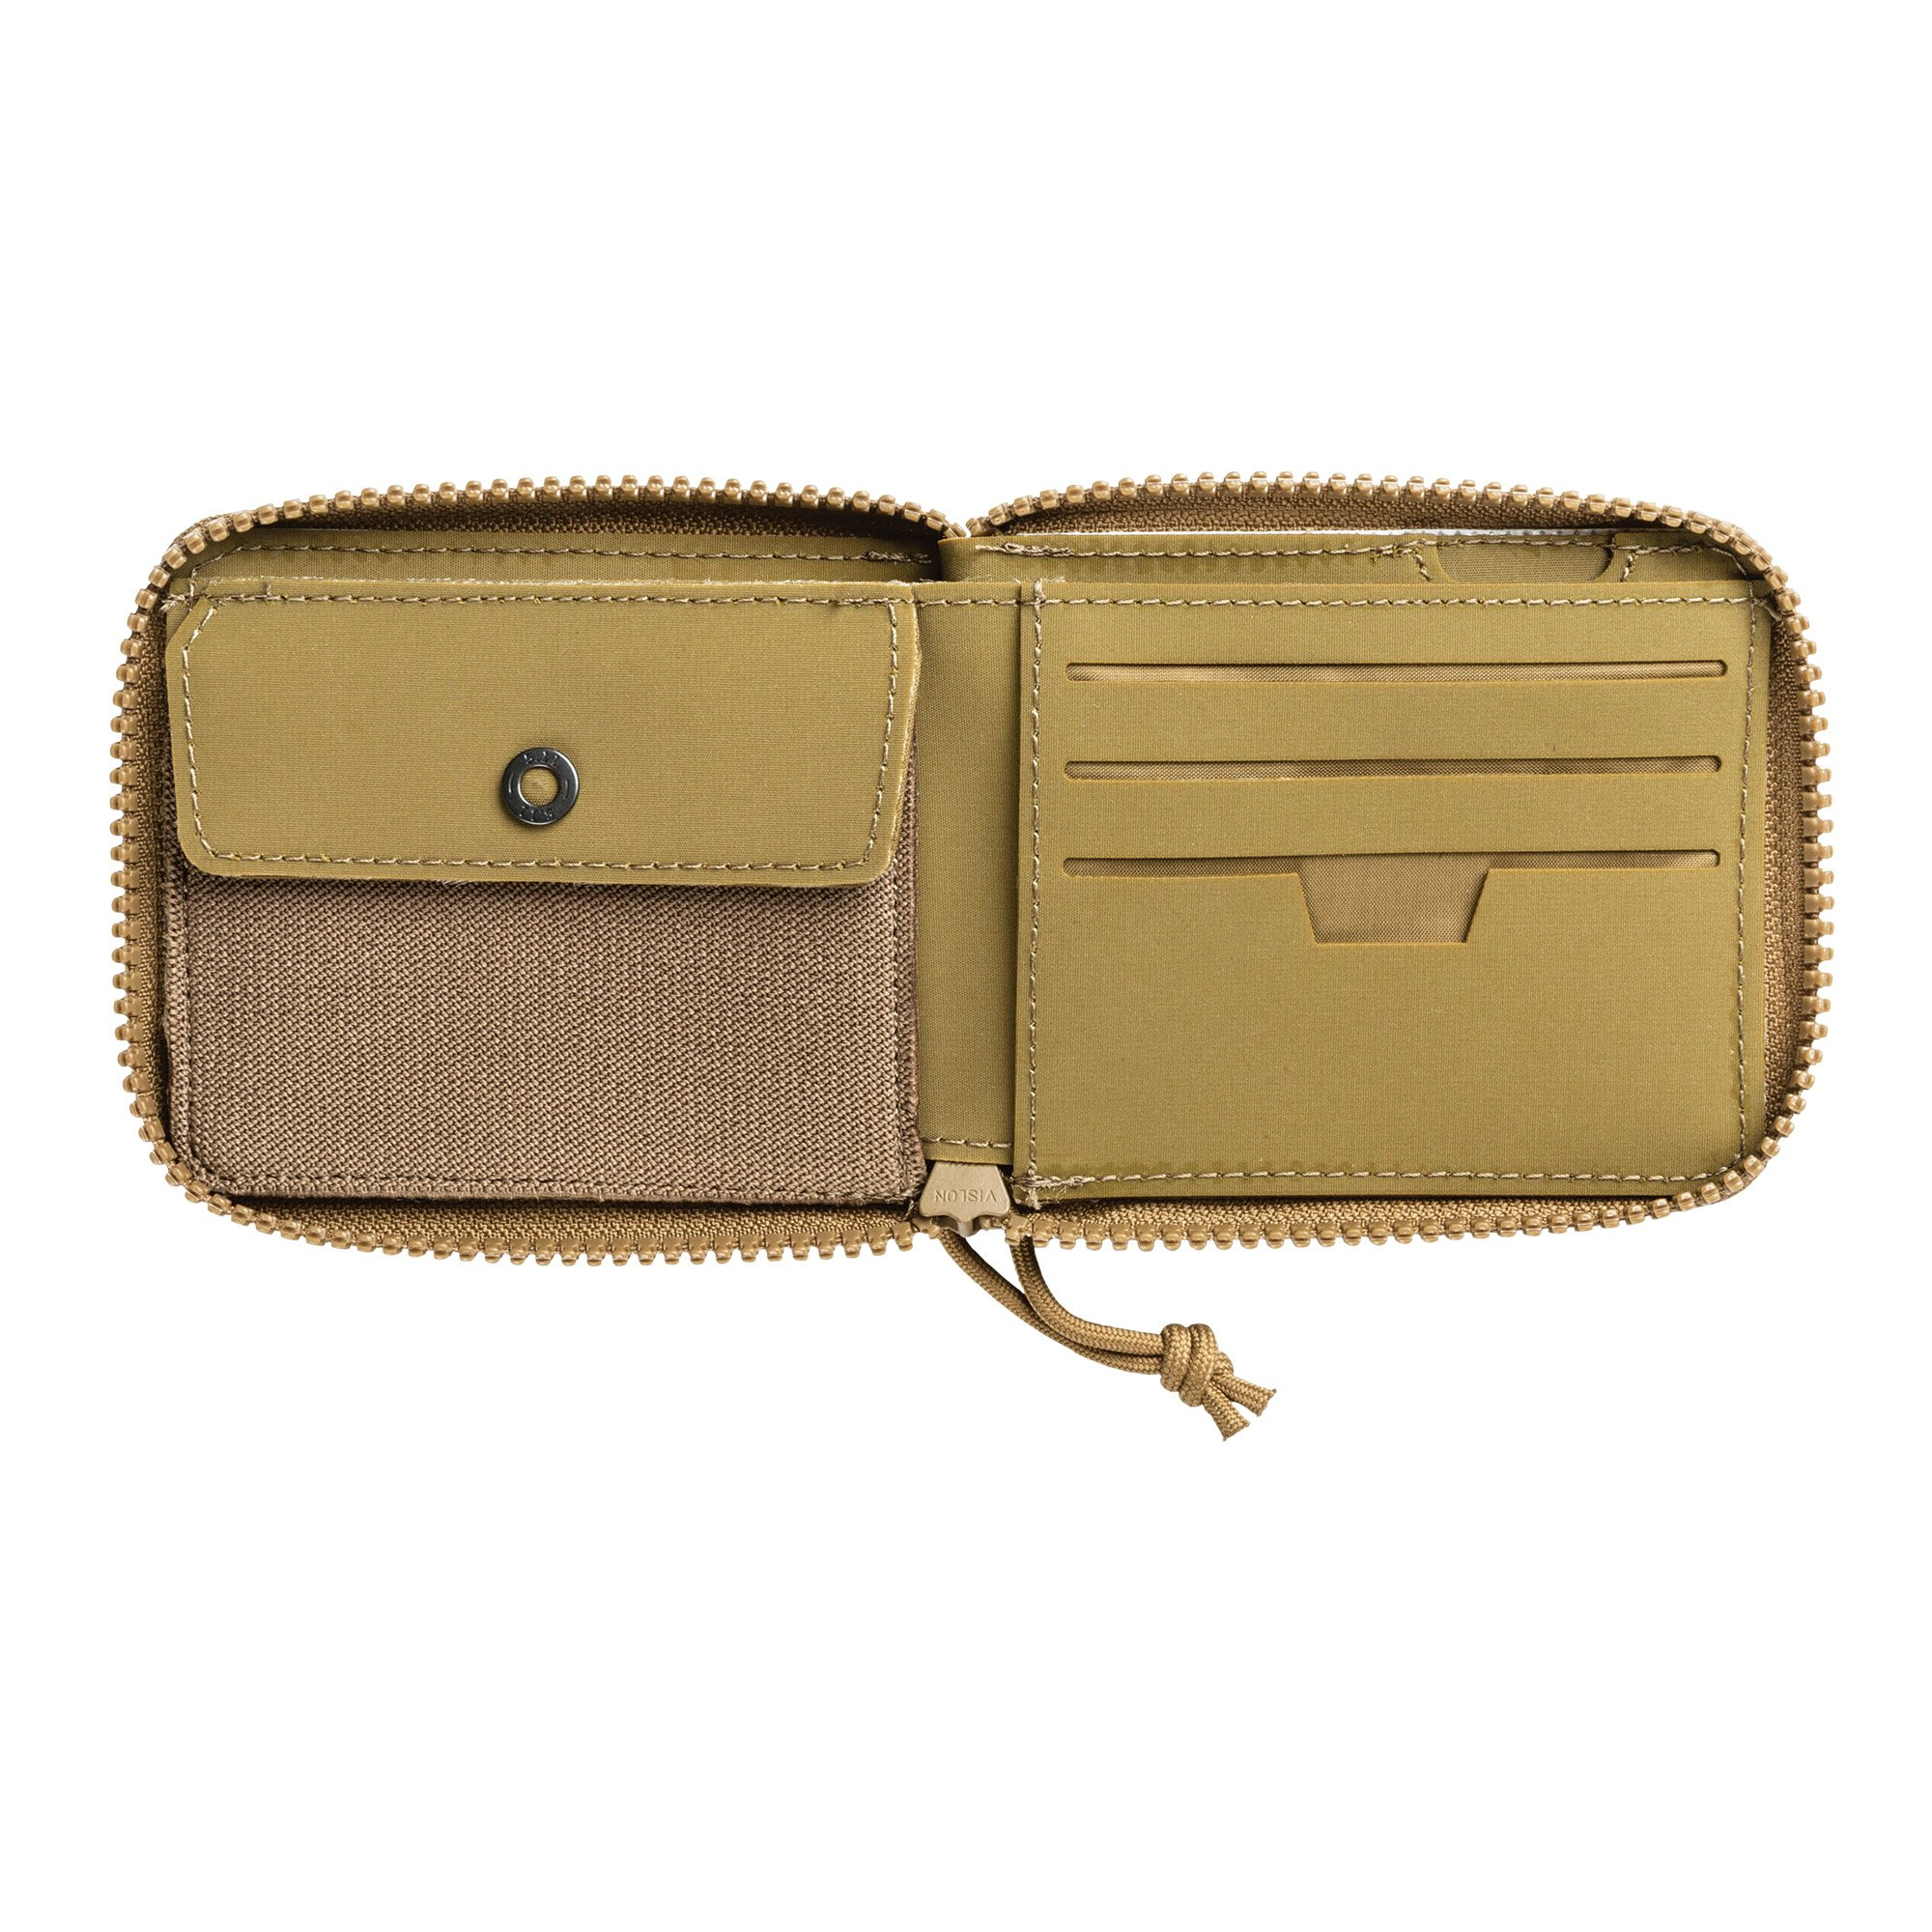 LOCK DOWN WALLET – Kangaroo